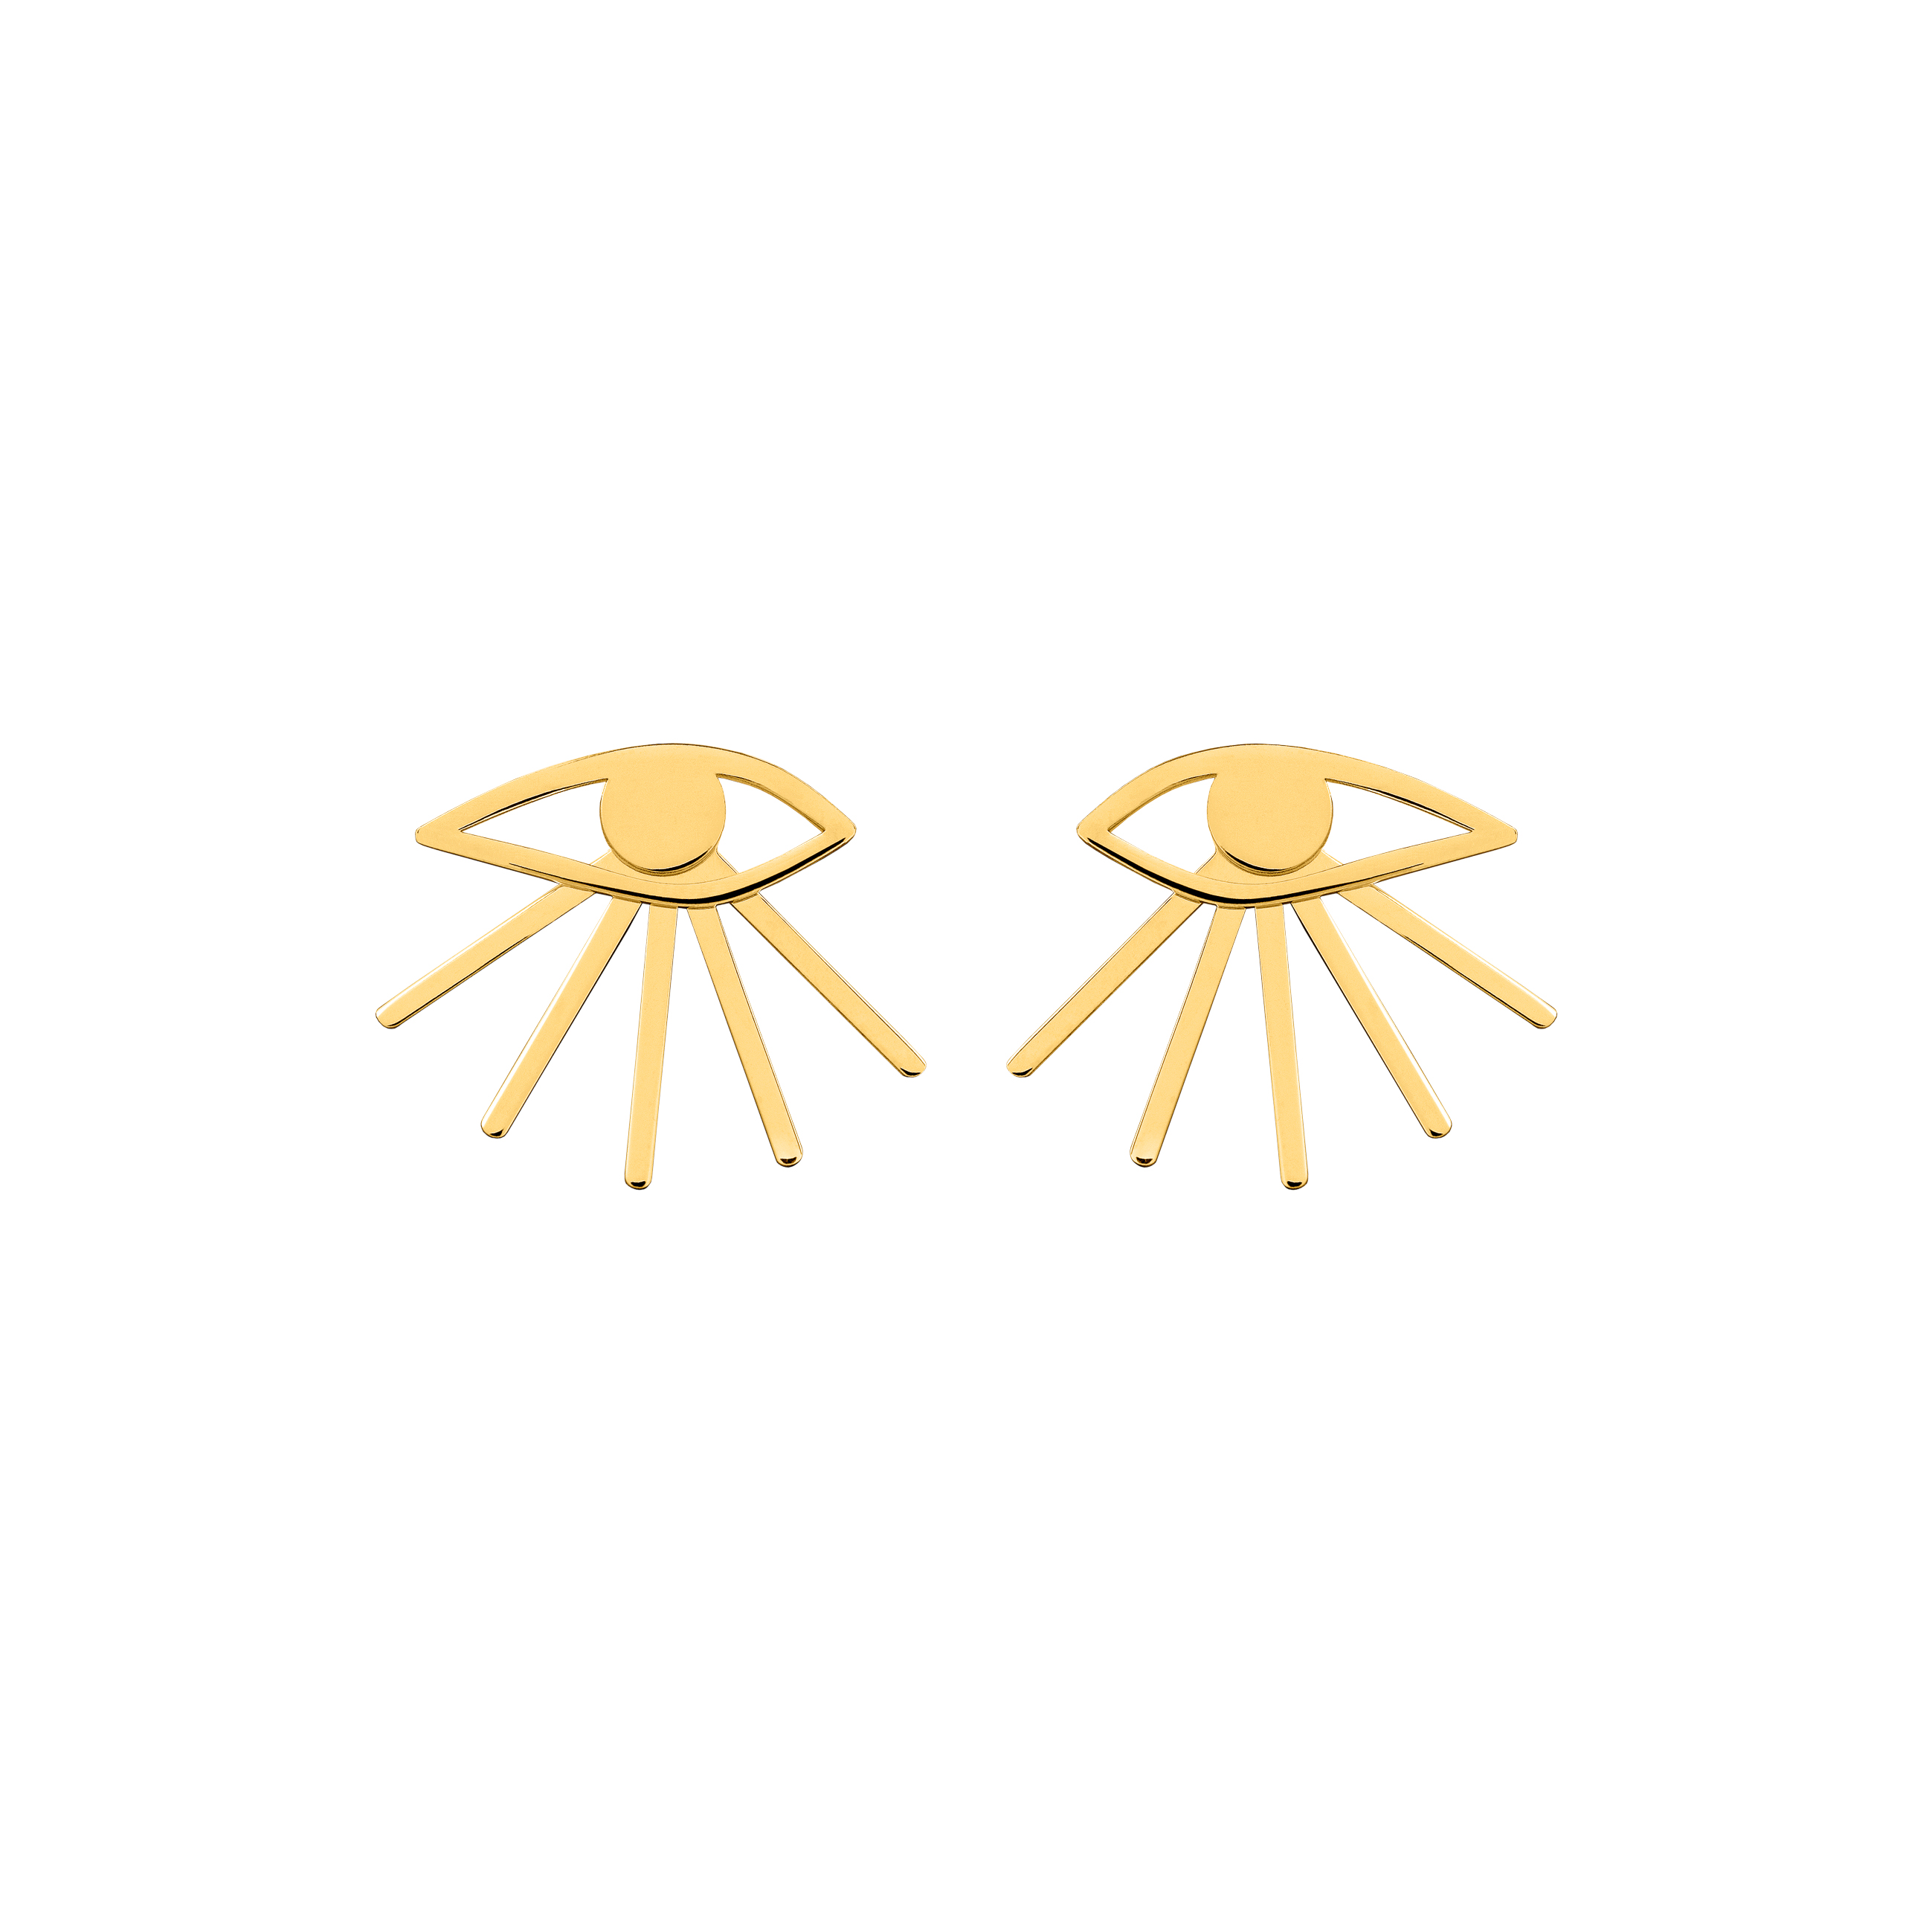 MINI EYE EARRINGS/ GOLD